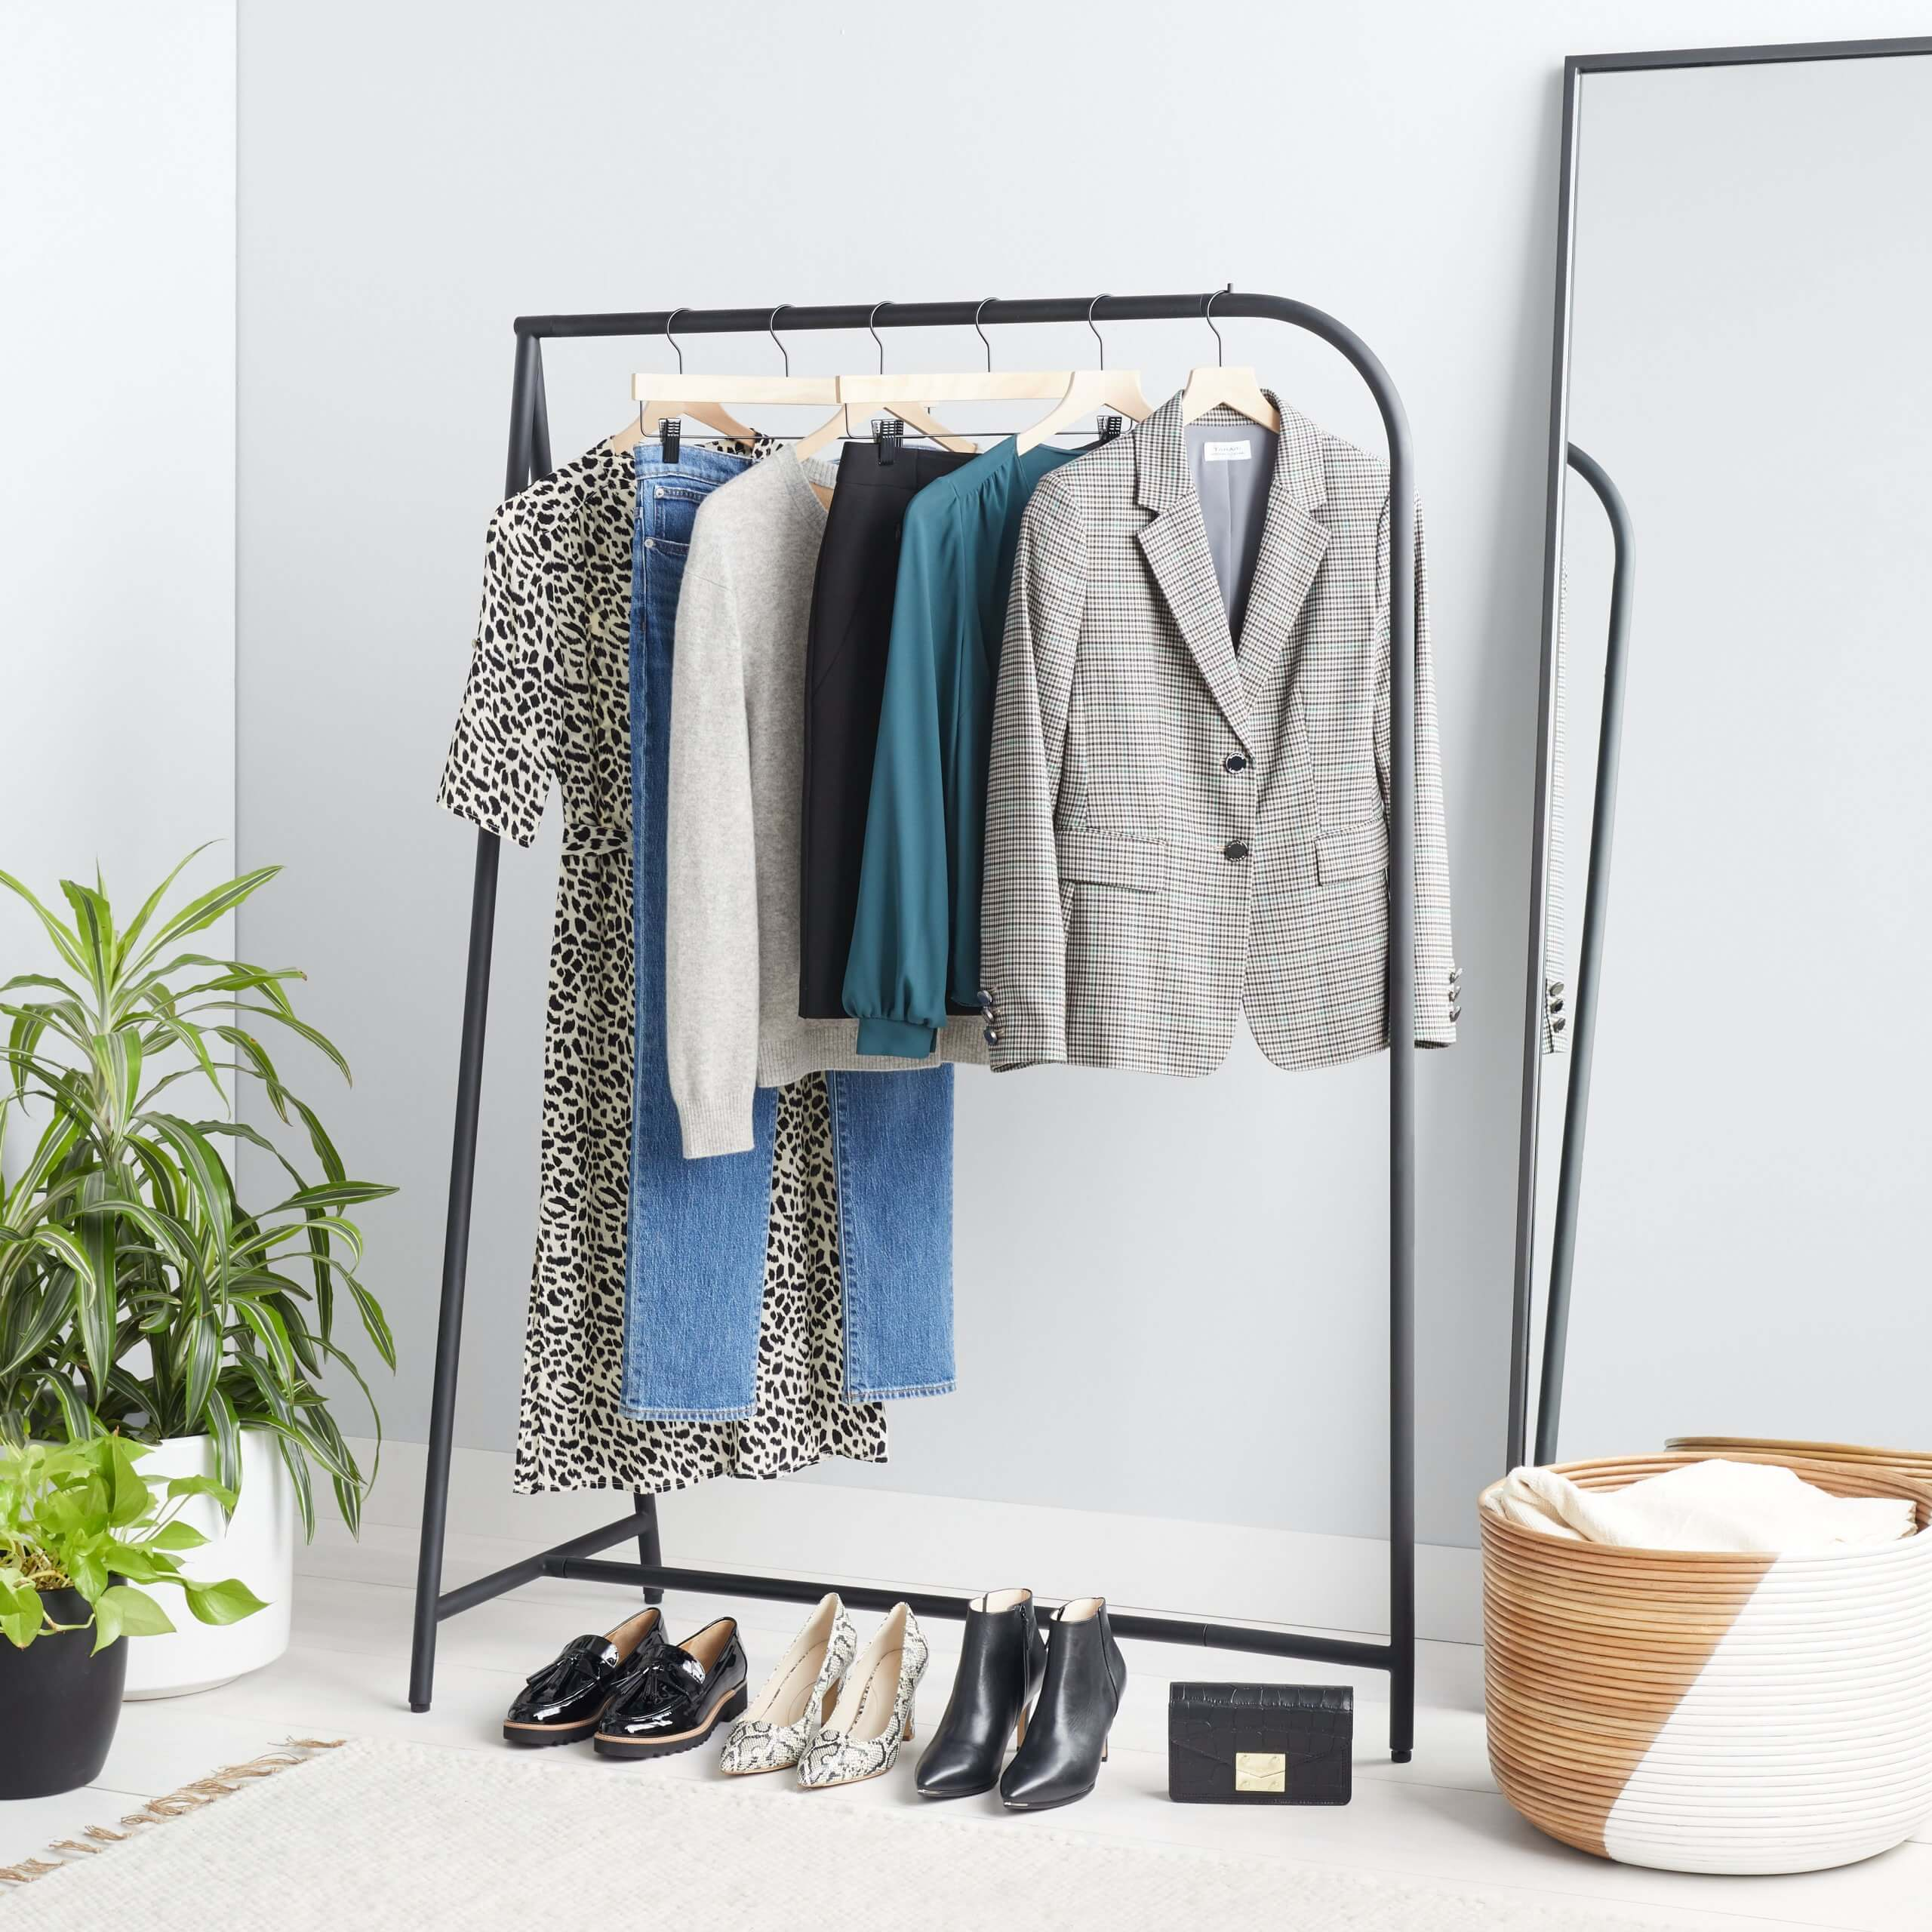 Stitch Fix Women's rack image featuring grey blazer, teal blouse, black skirt, grey sweater, blue jeans and black animal print tie-waist dress hanging on black rack next to black purse, black booties, white animal print pumps and black loafers on the floor.